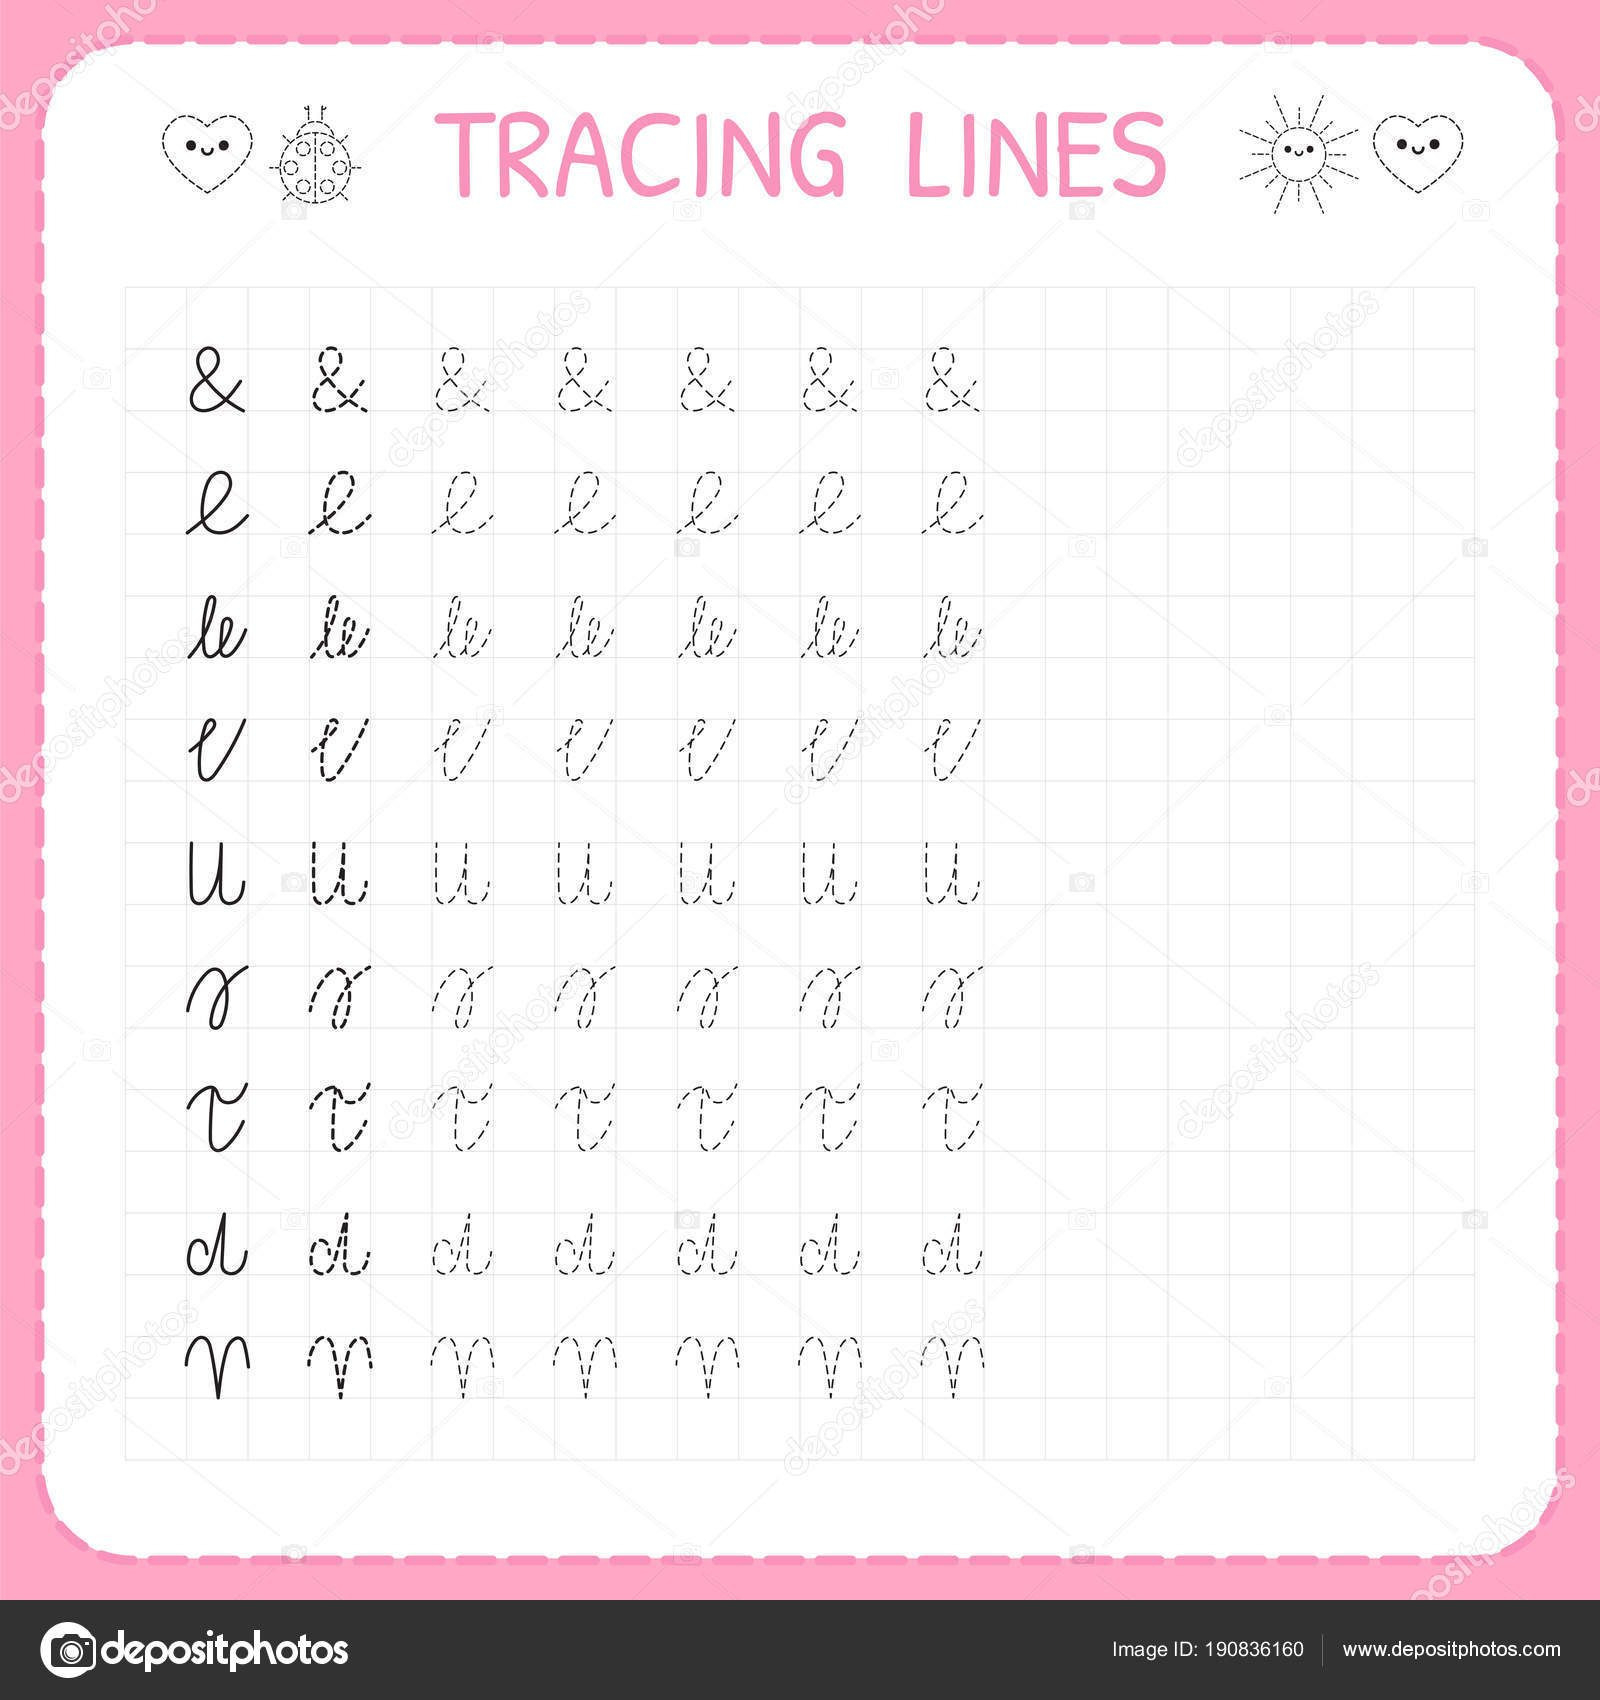 Free Handwriting Worksheets For Preschool E2 80 93 With